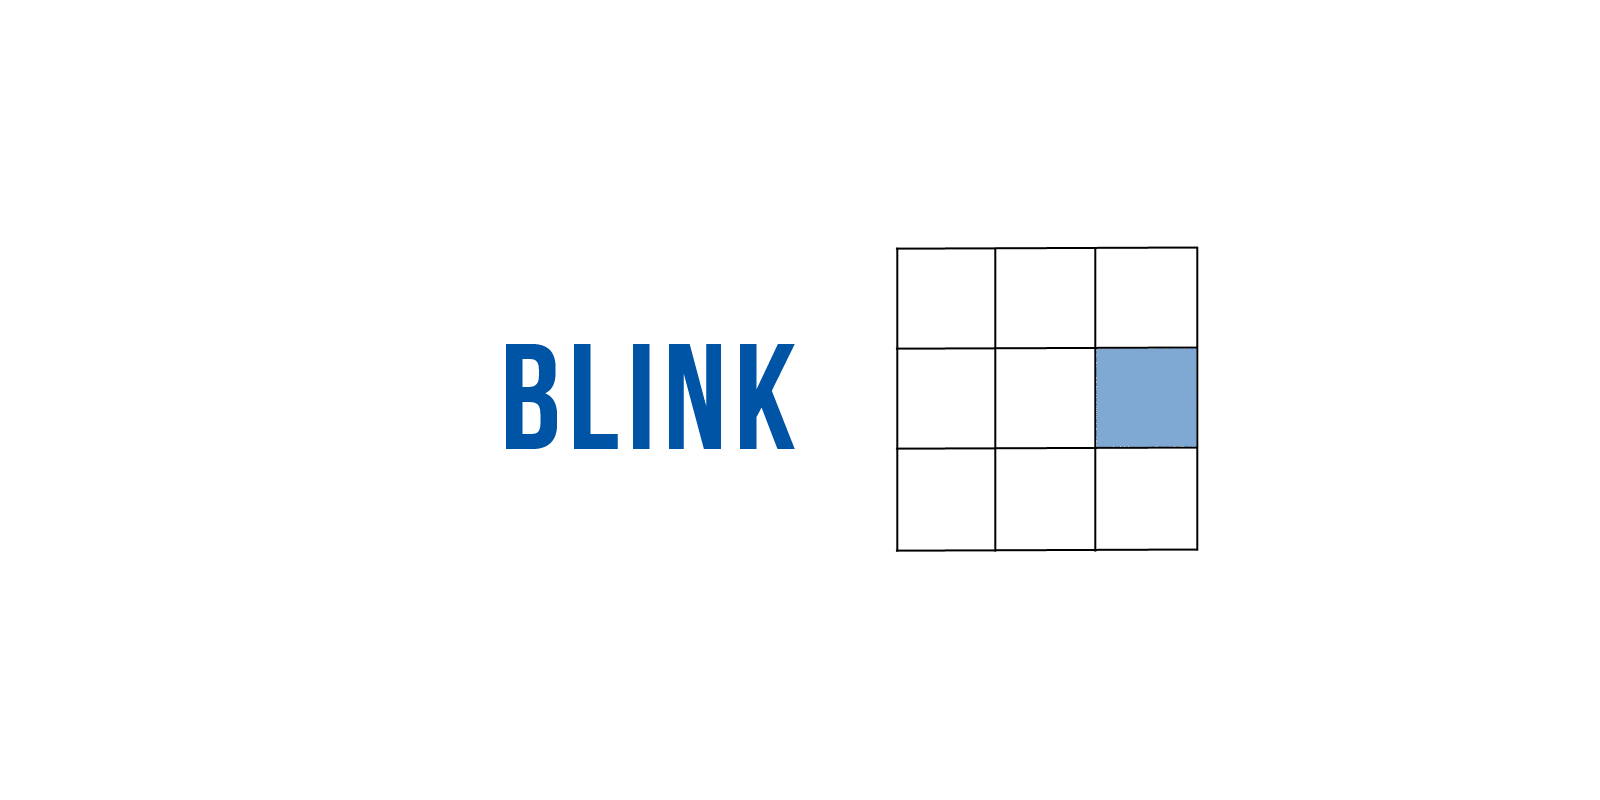 the Blink game.